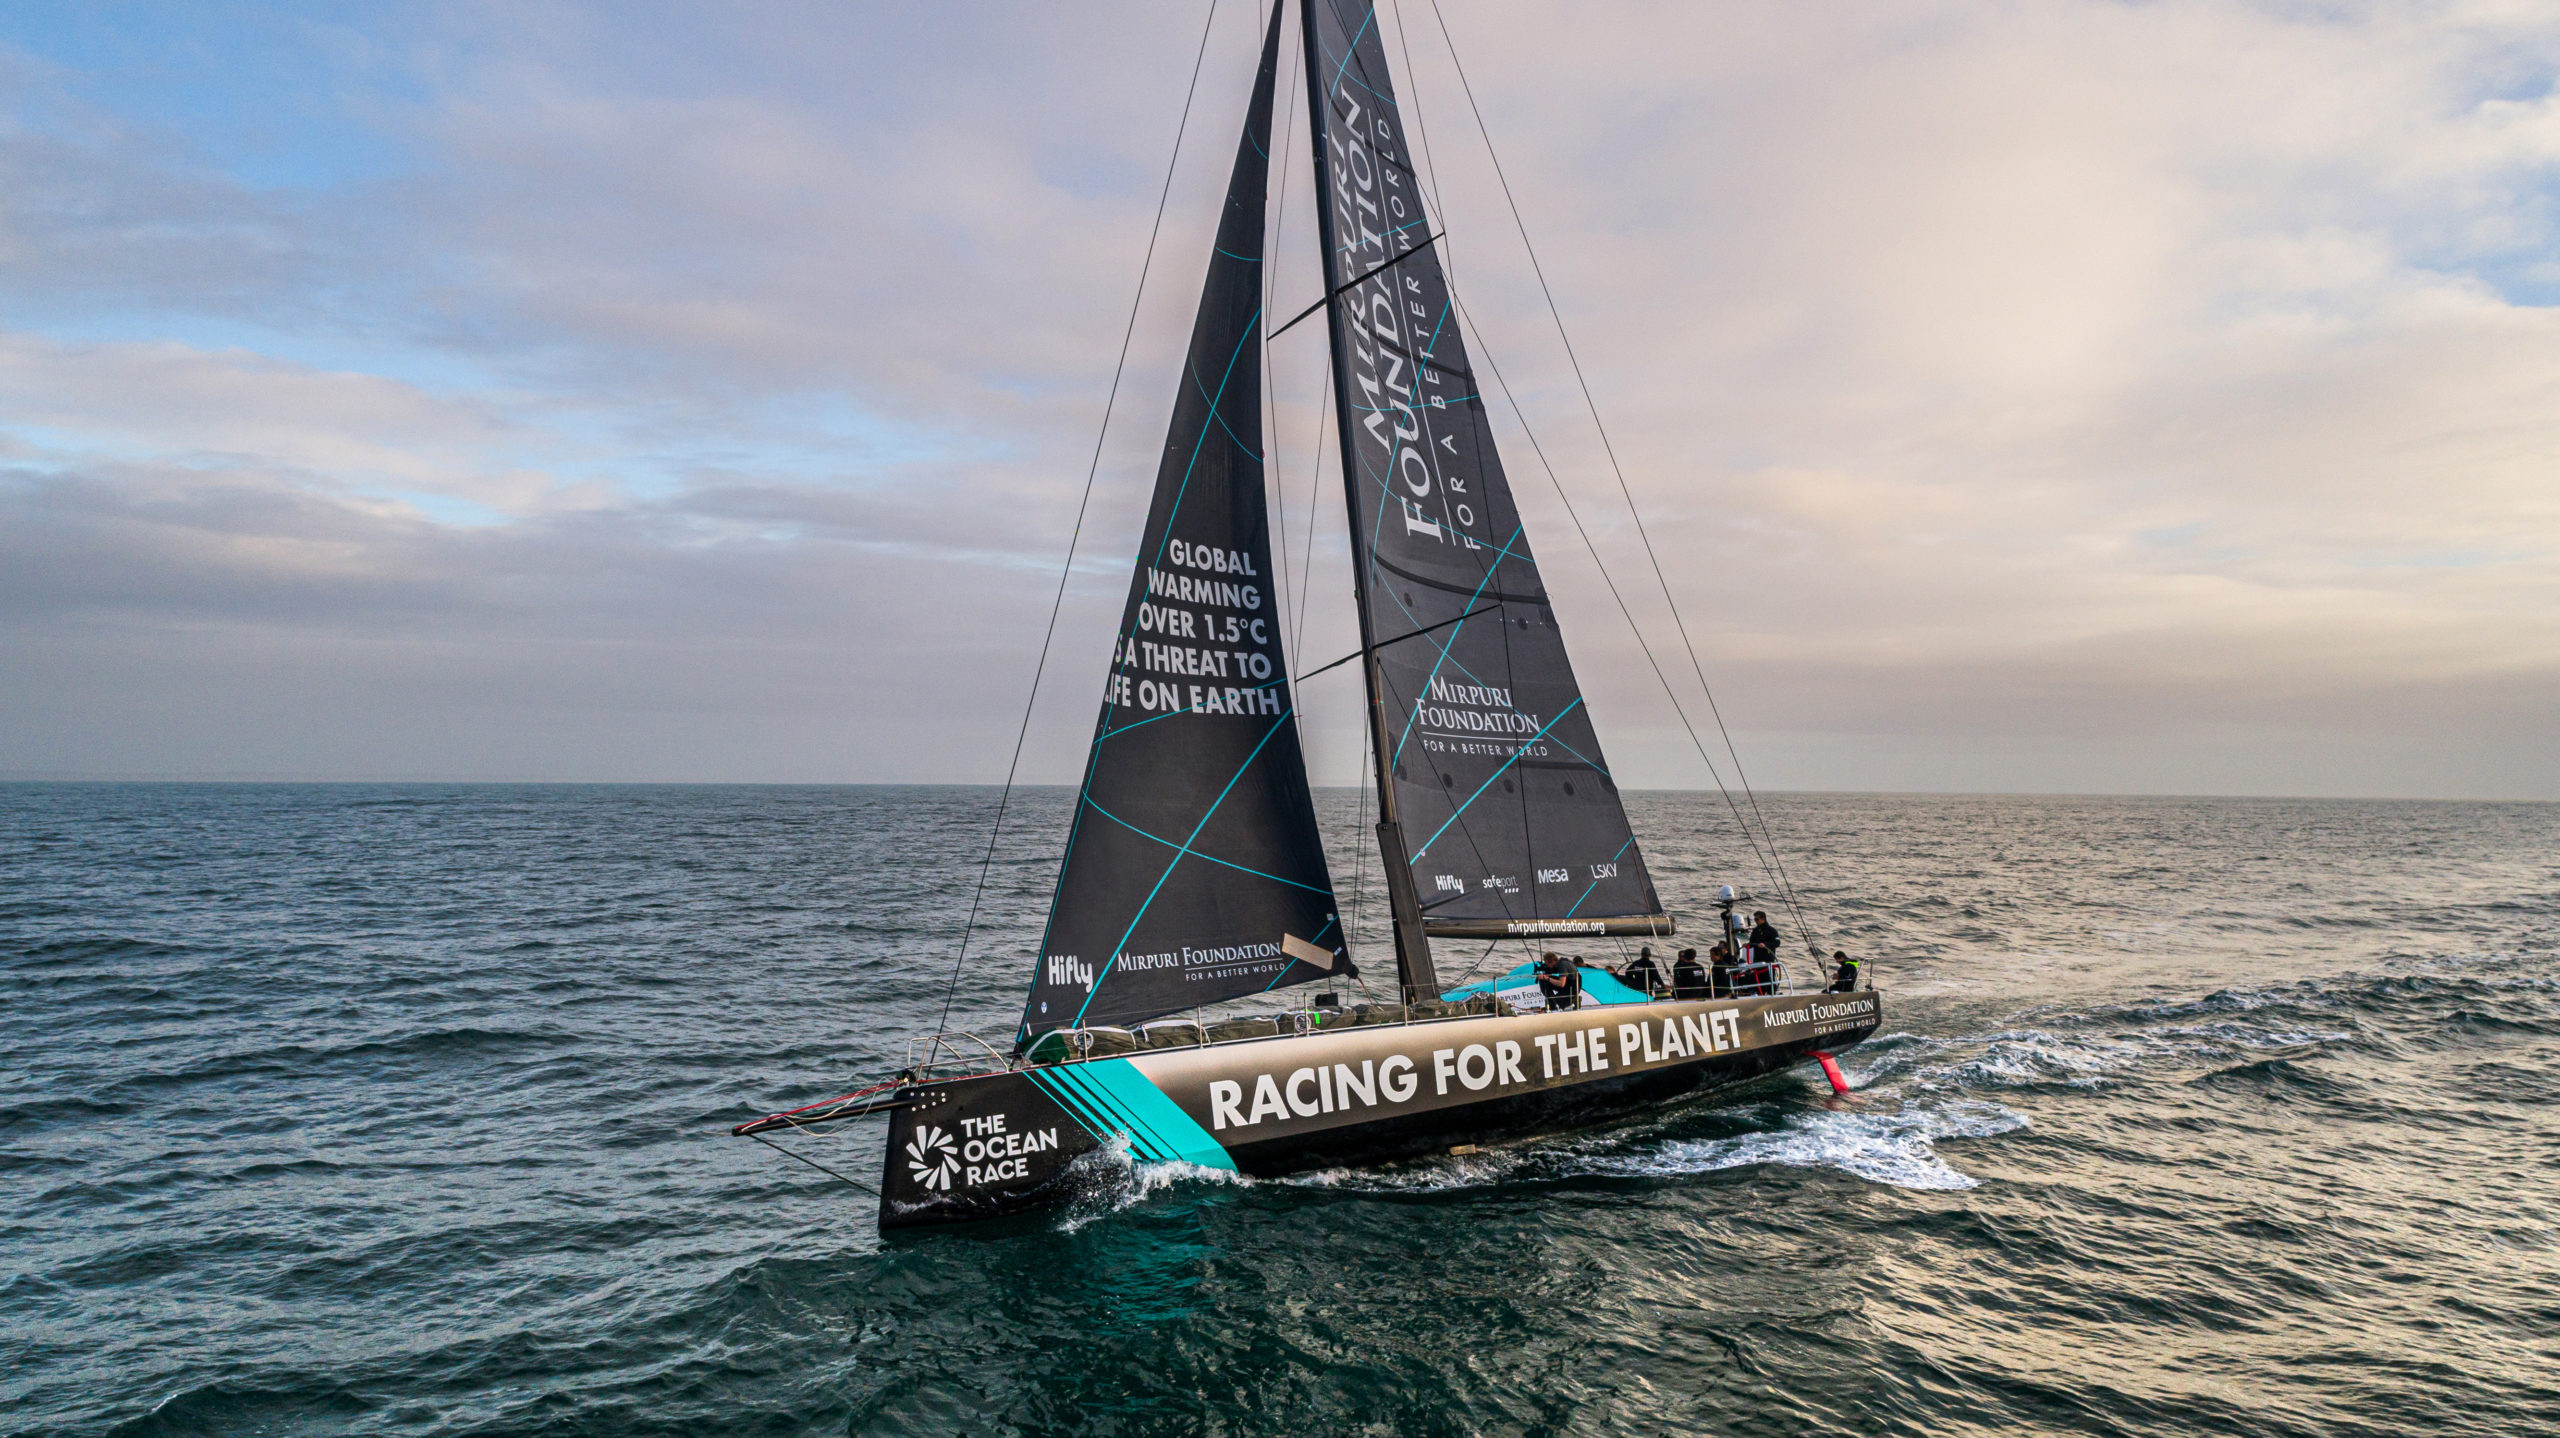 Imoca Racing for the planet